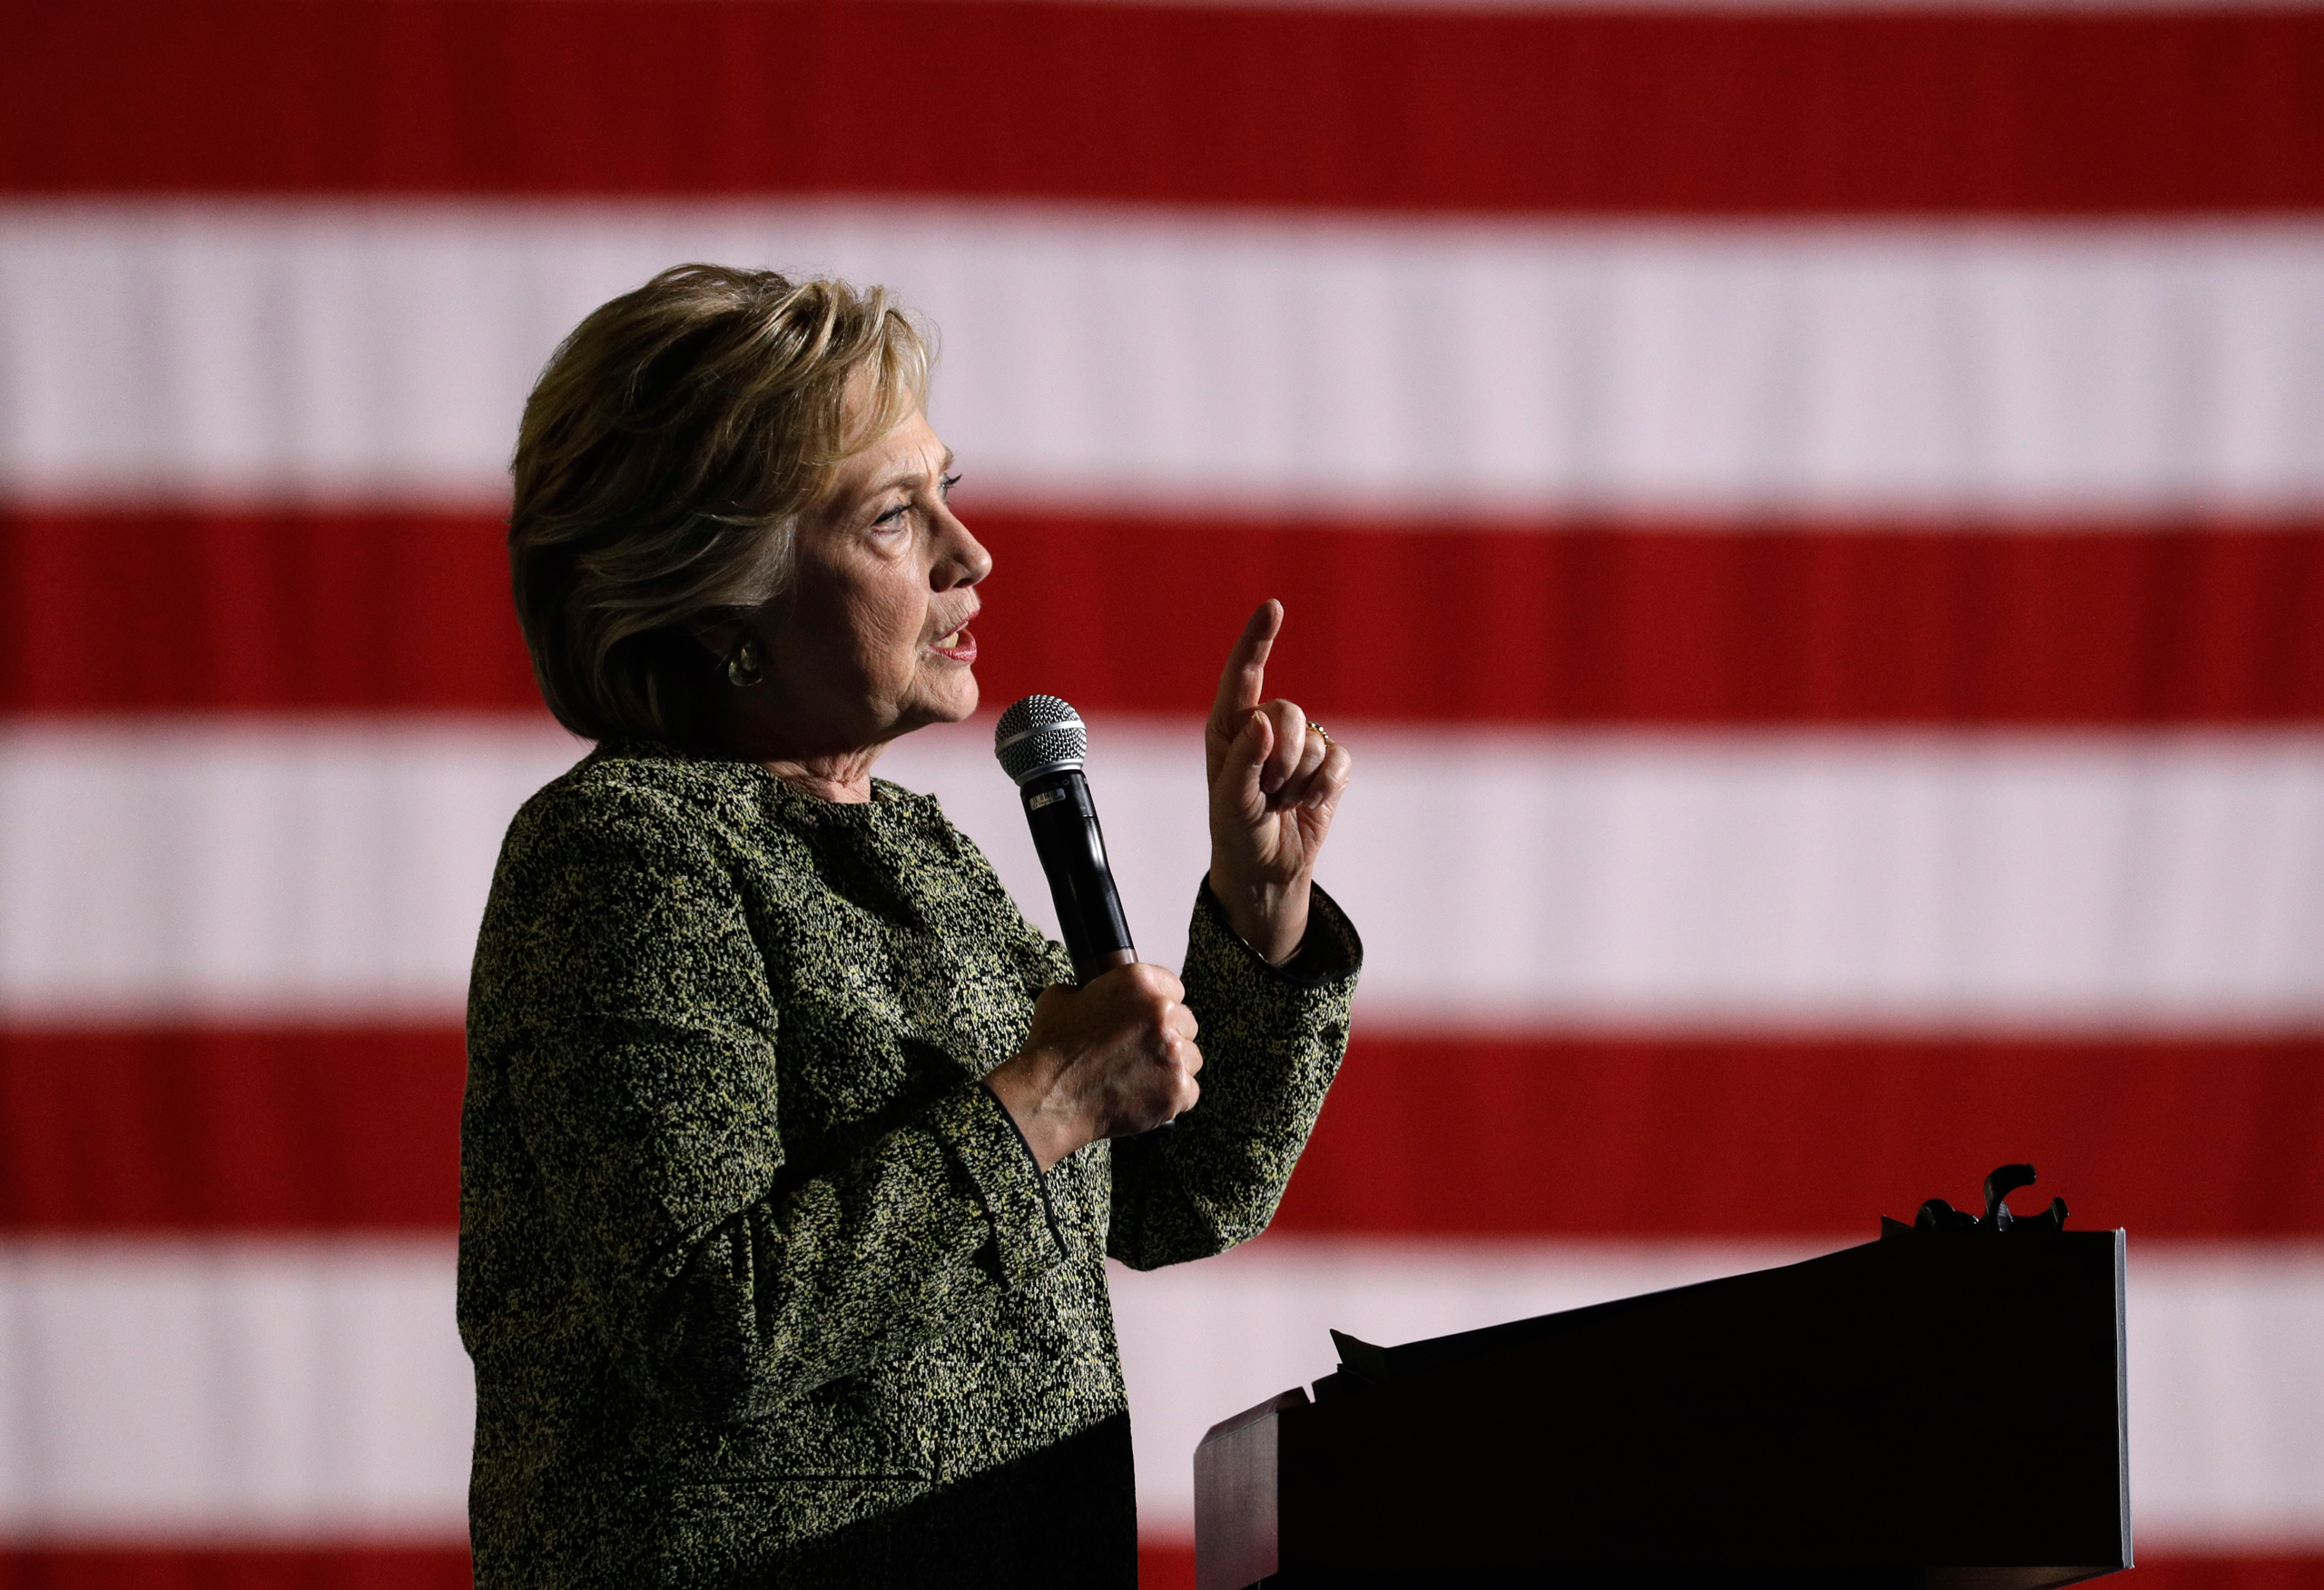 Democratic presidential candidate Hillary Clinton speaks at a rally in Las Vegas on Oct. 12, 2016.